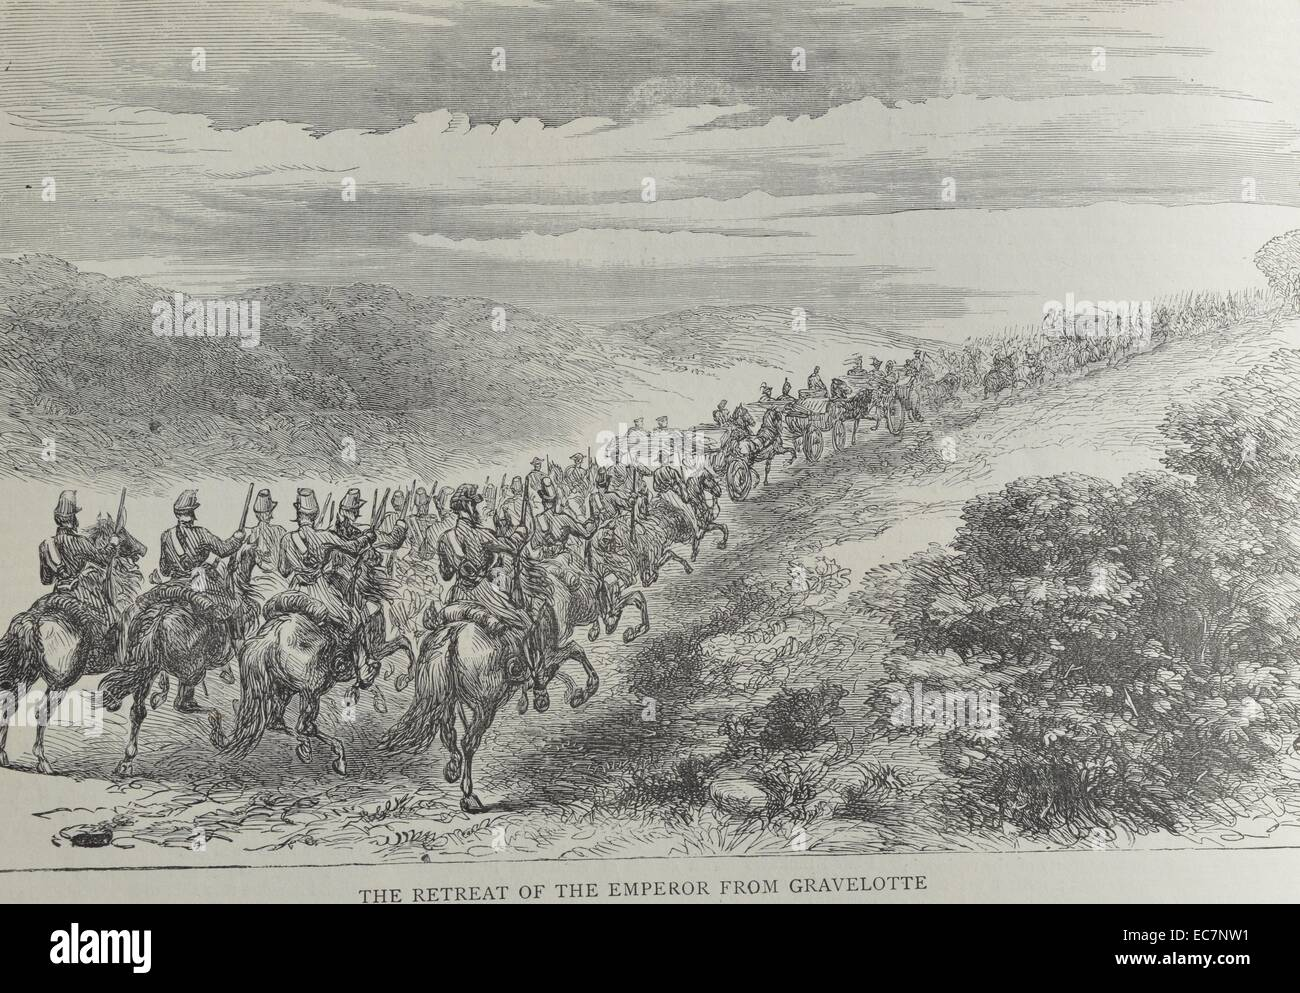 The Retreat of the Emperor from Gravelotte - Stock Image